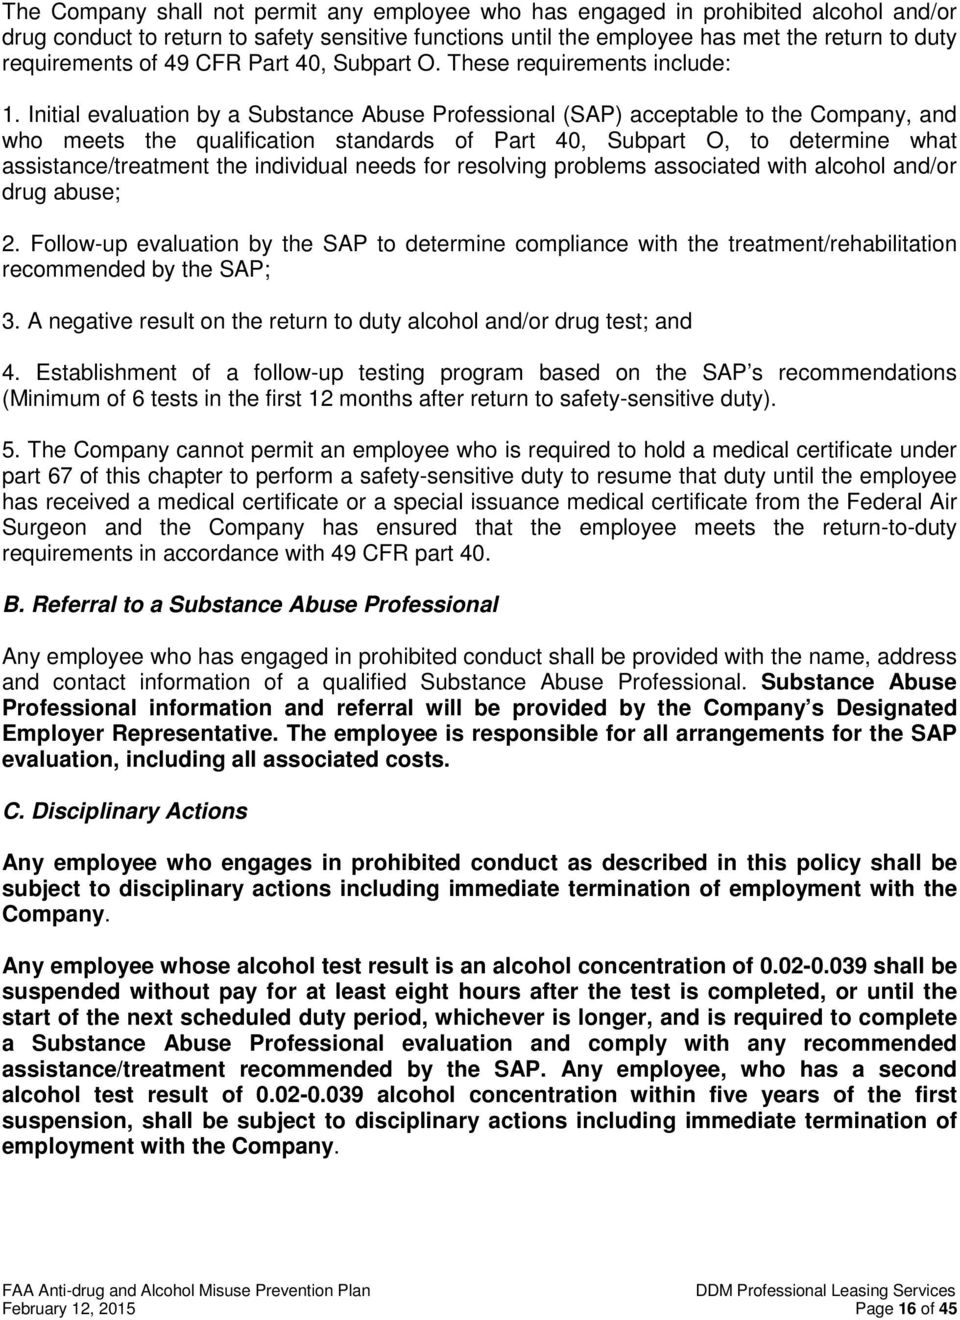 Initial evaluation by a Substance Abuse Professional (SAP) acceptable to the Company, and who meets the qualification standards of Part 40, Subpart O, to determine what assistance/treatment the